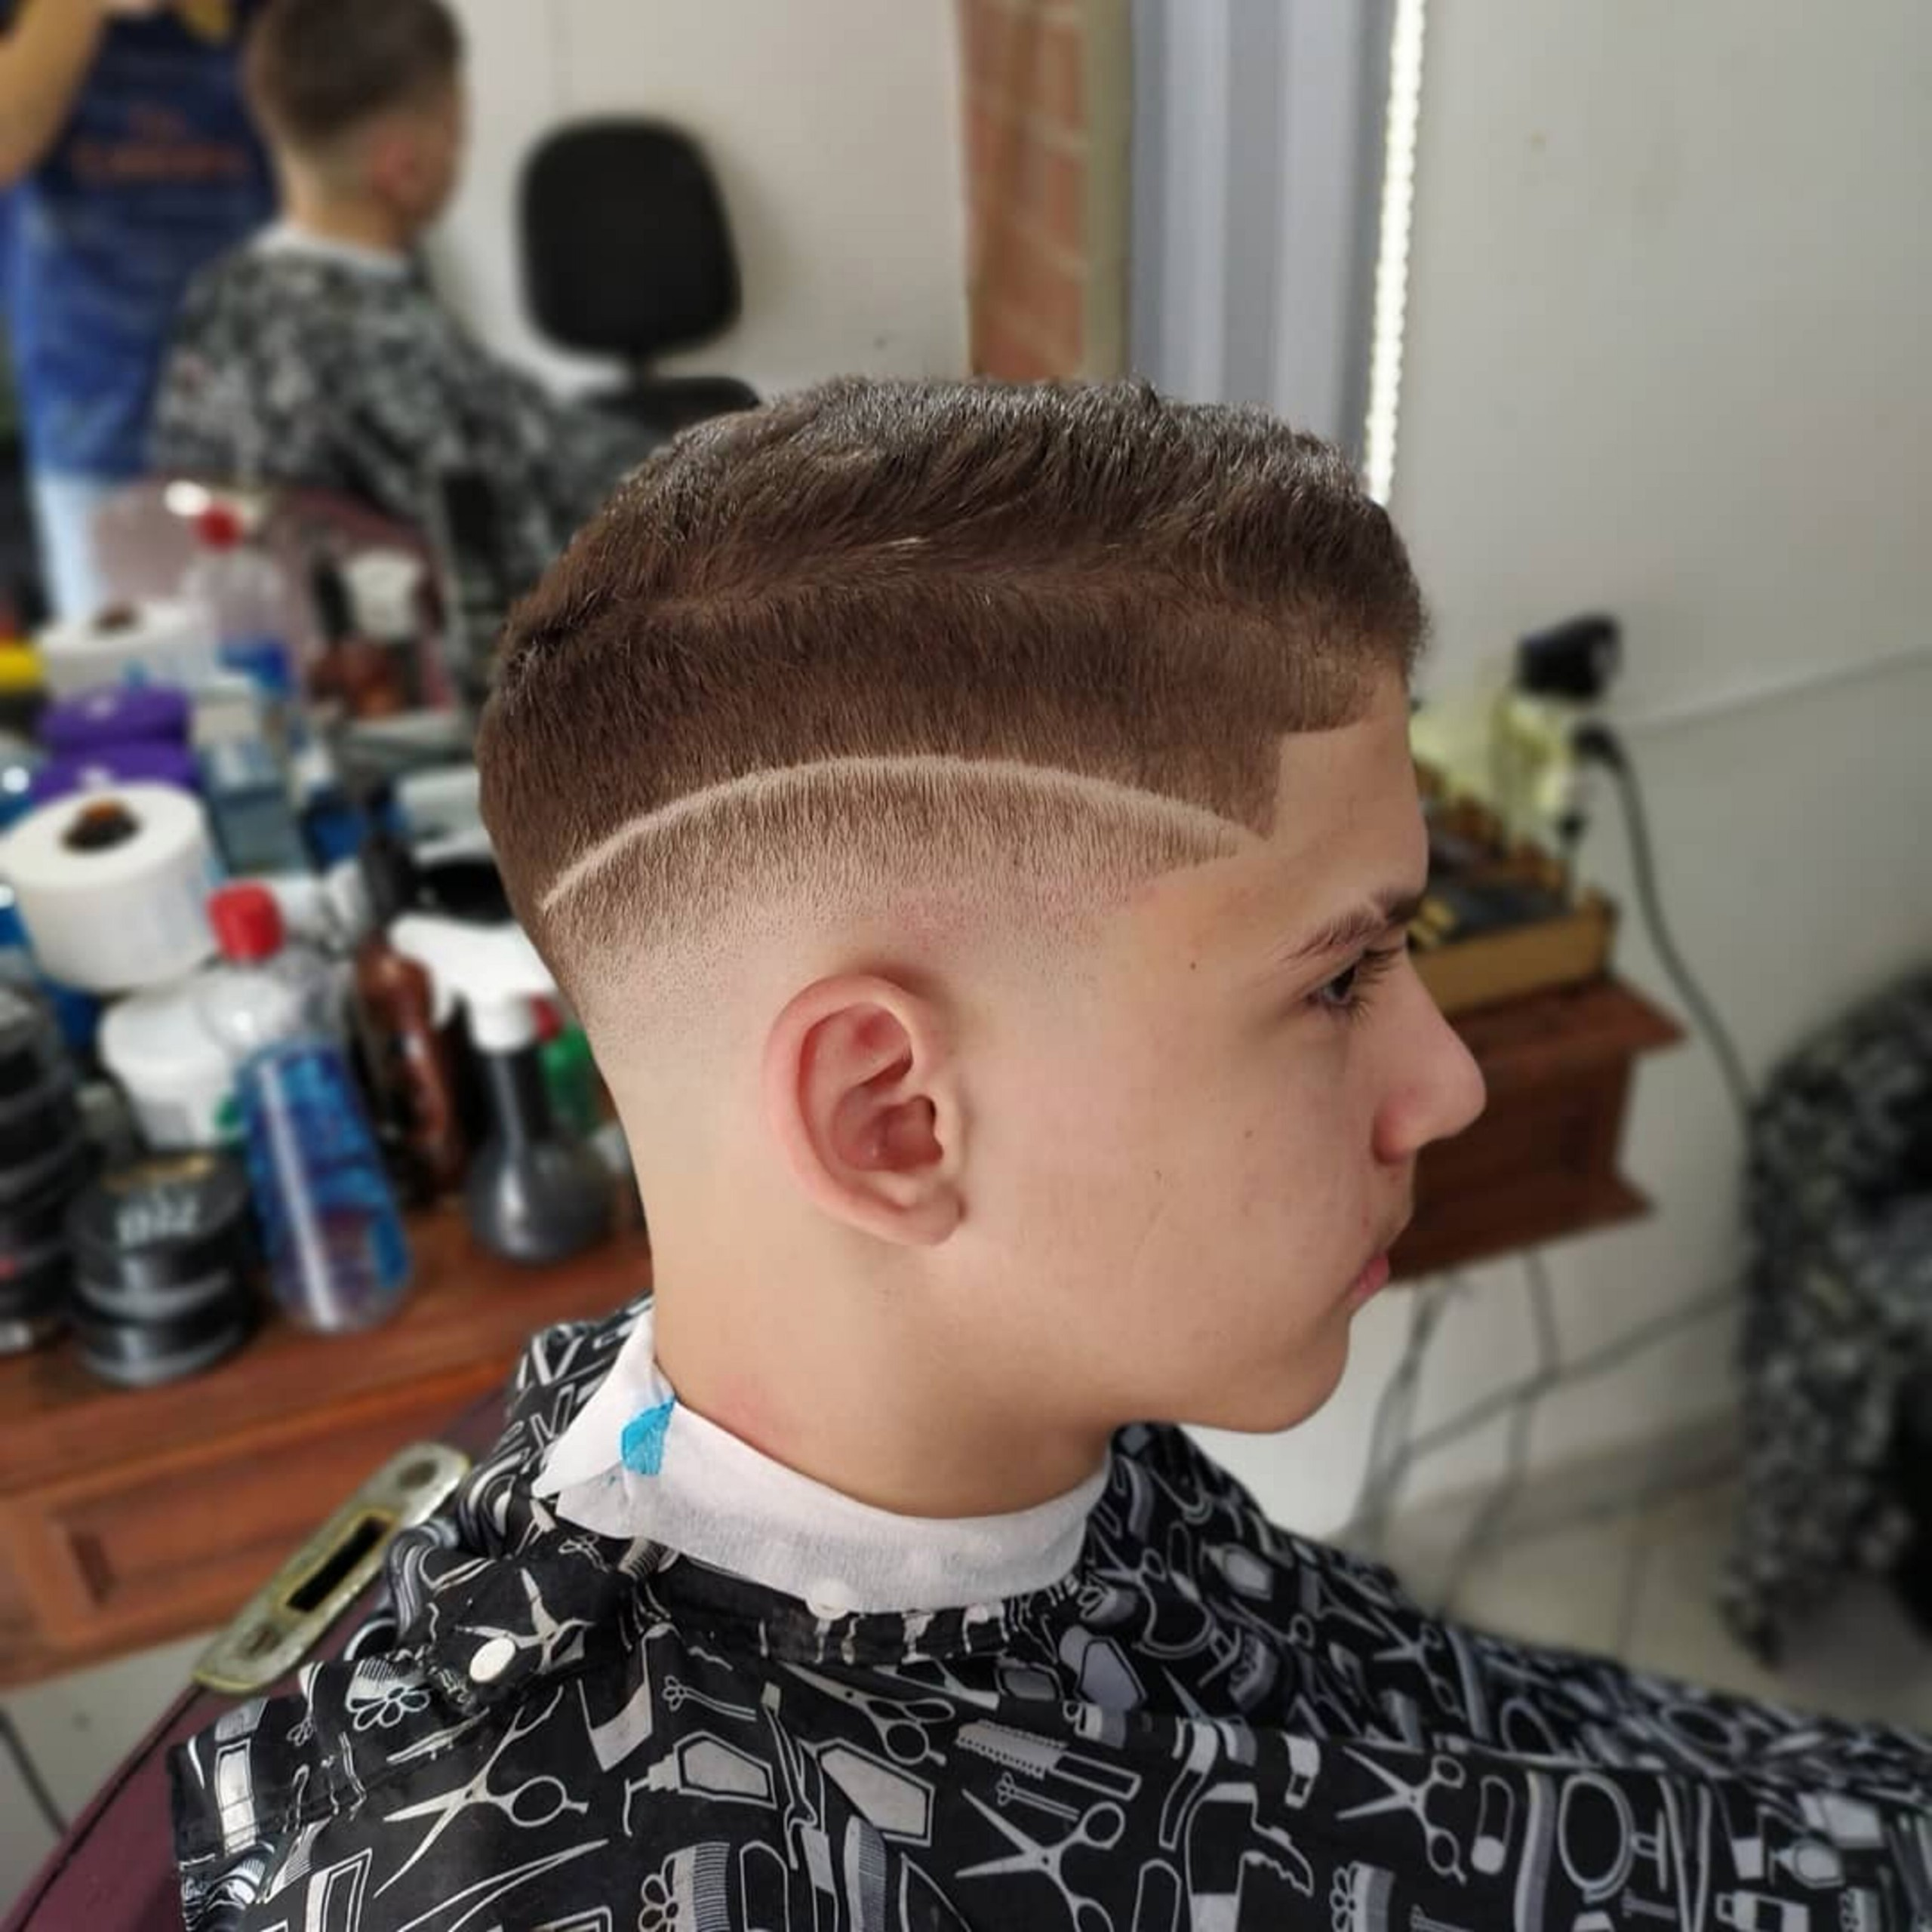 A skin-faded haircut for boys.